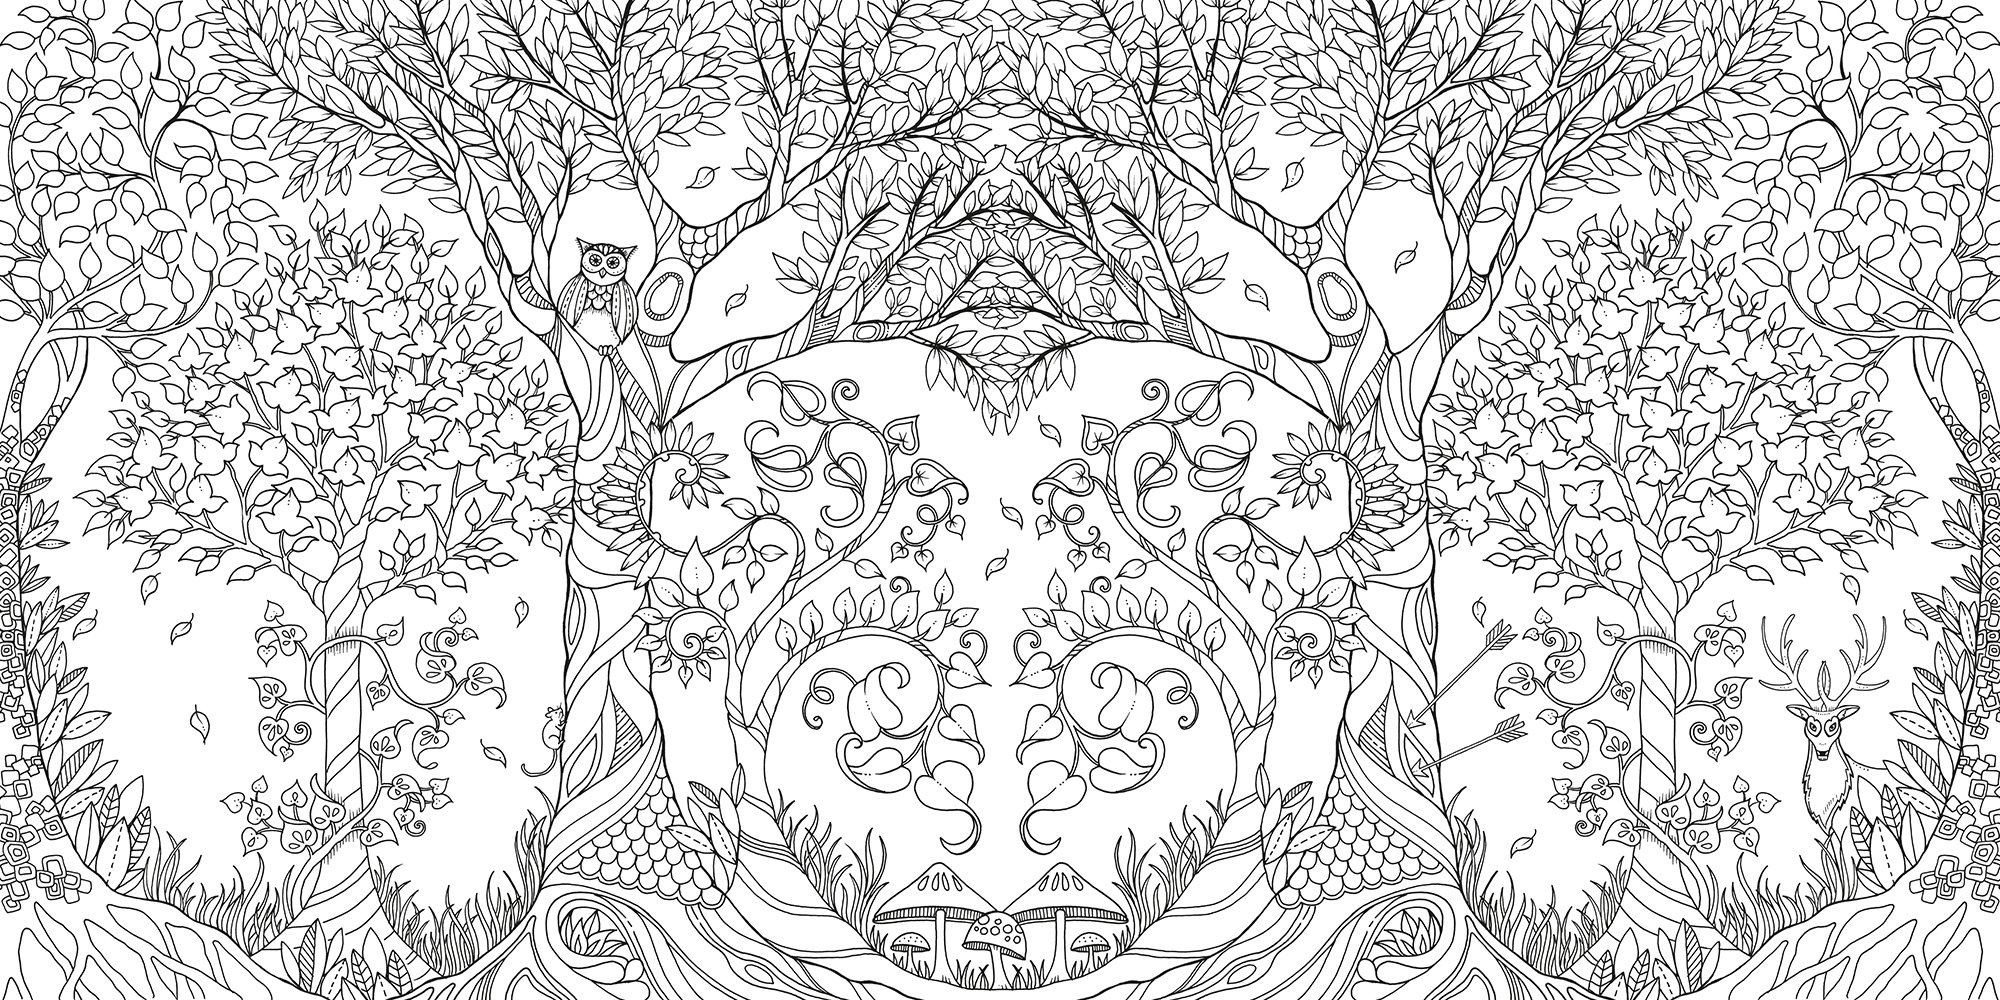 Lets Color! Coloring Books for Grown-Ups